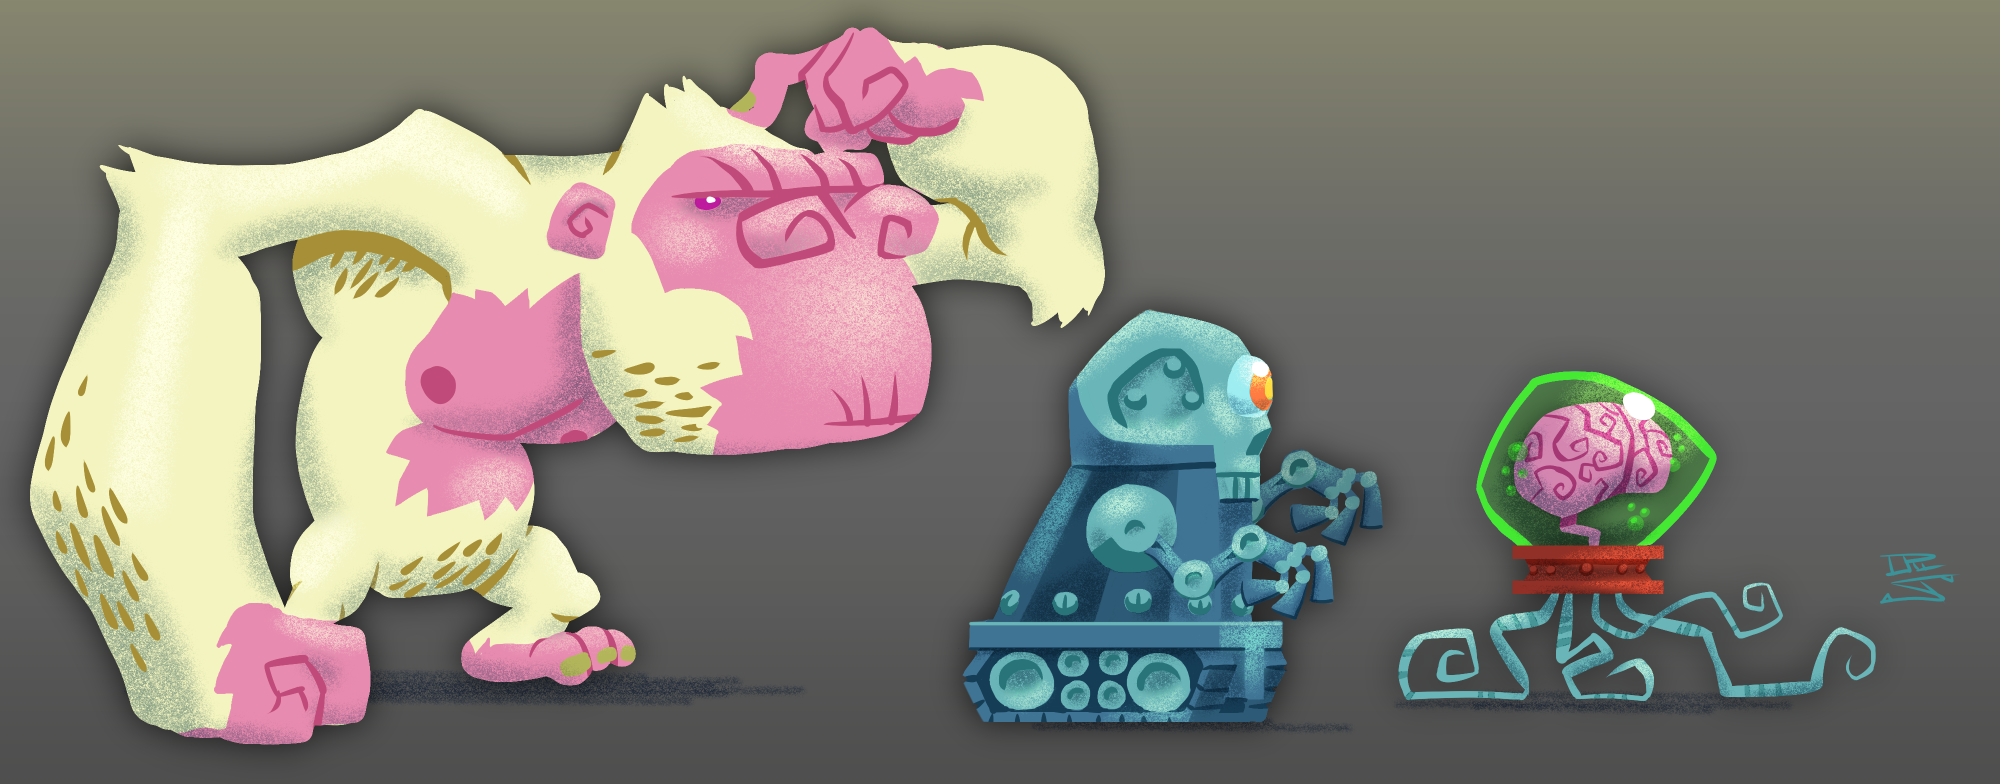 Monsters for Unannounced Project